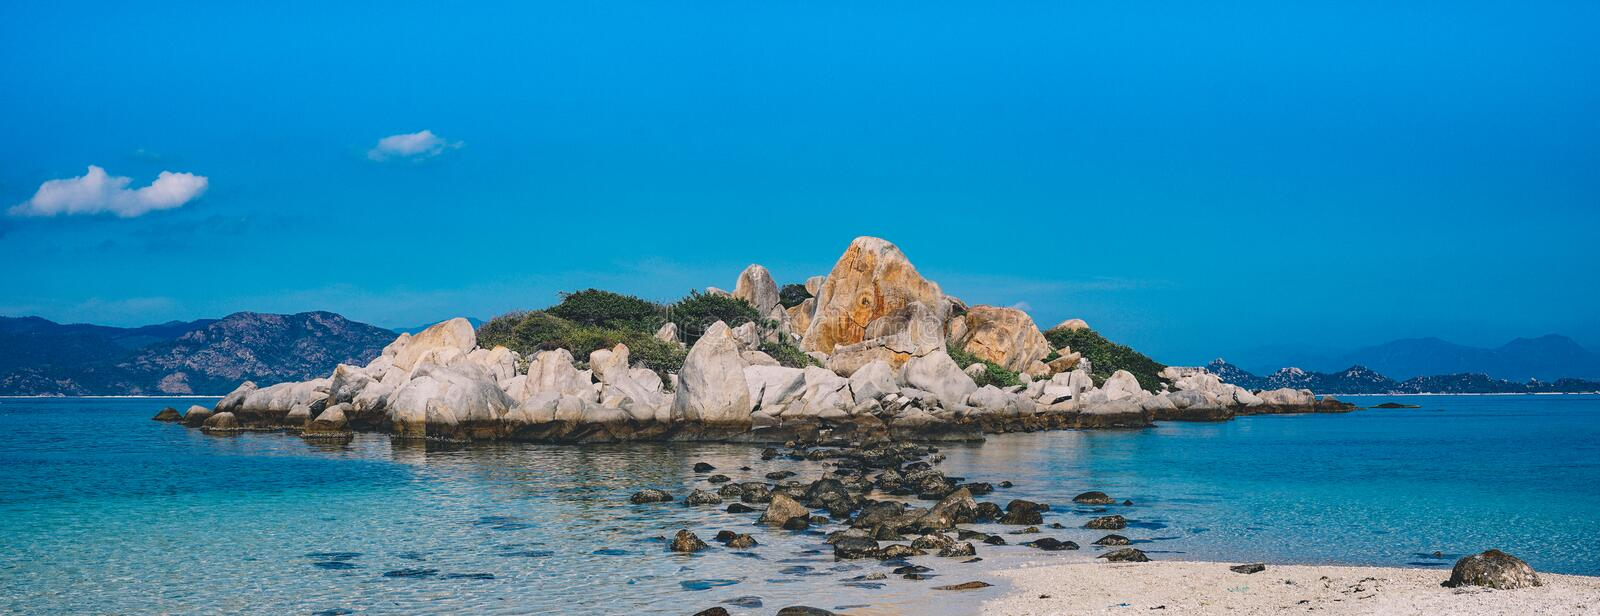 Rocky Island Surrounded By White Water Free Public Domain Cc0 Image